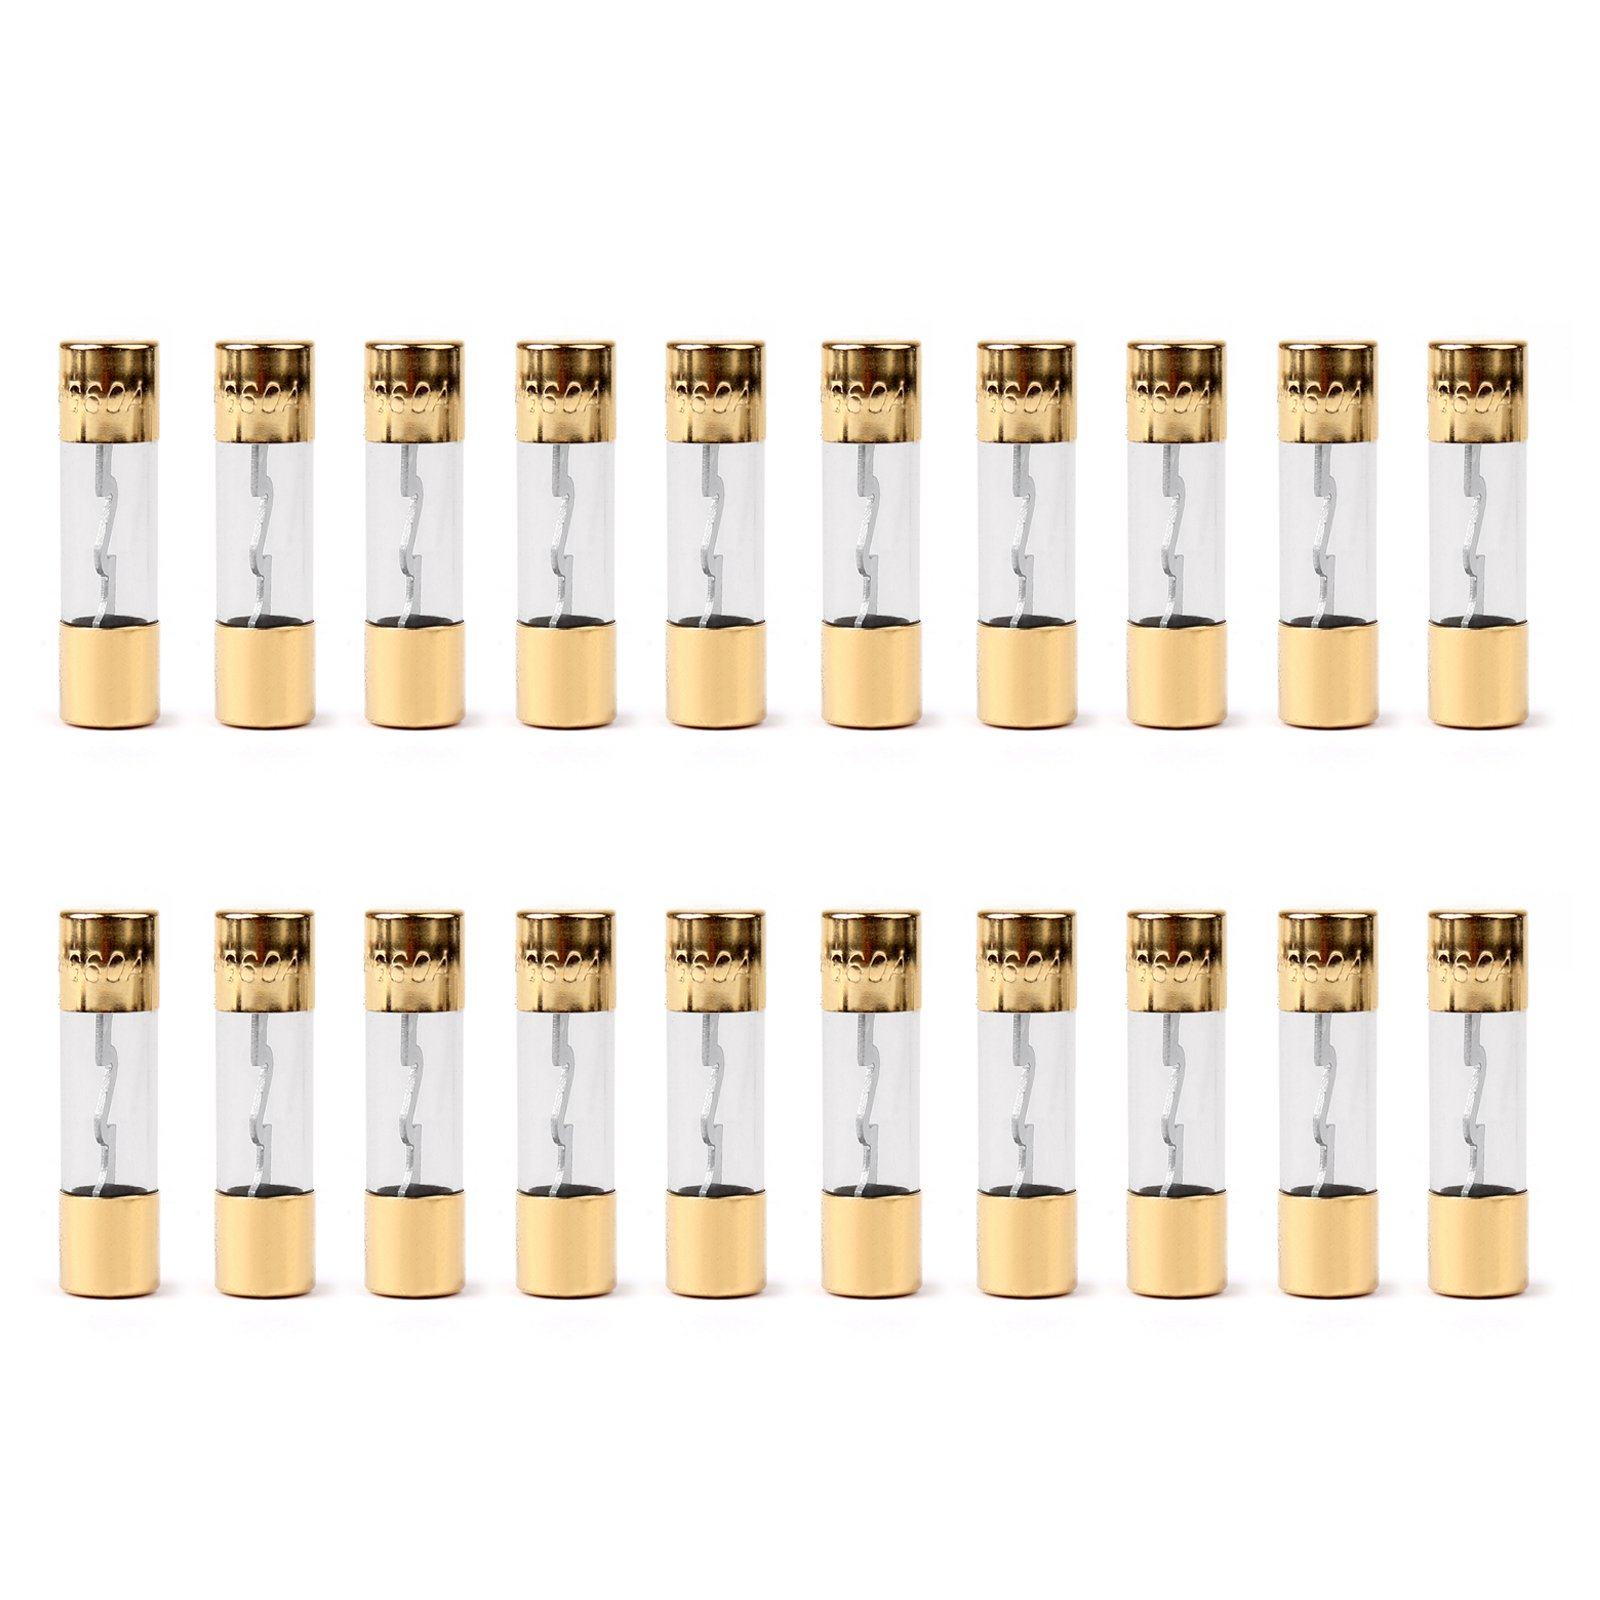 Areyourshop 20Pcs AGU Fuse Car Audio Power Safety Protection Glass Tube Gold Plated 60A